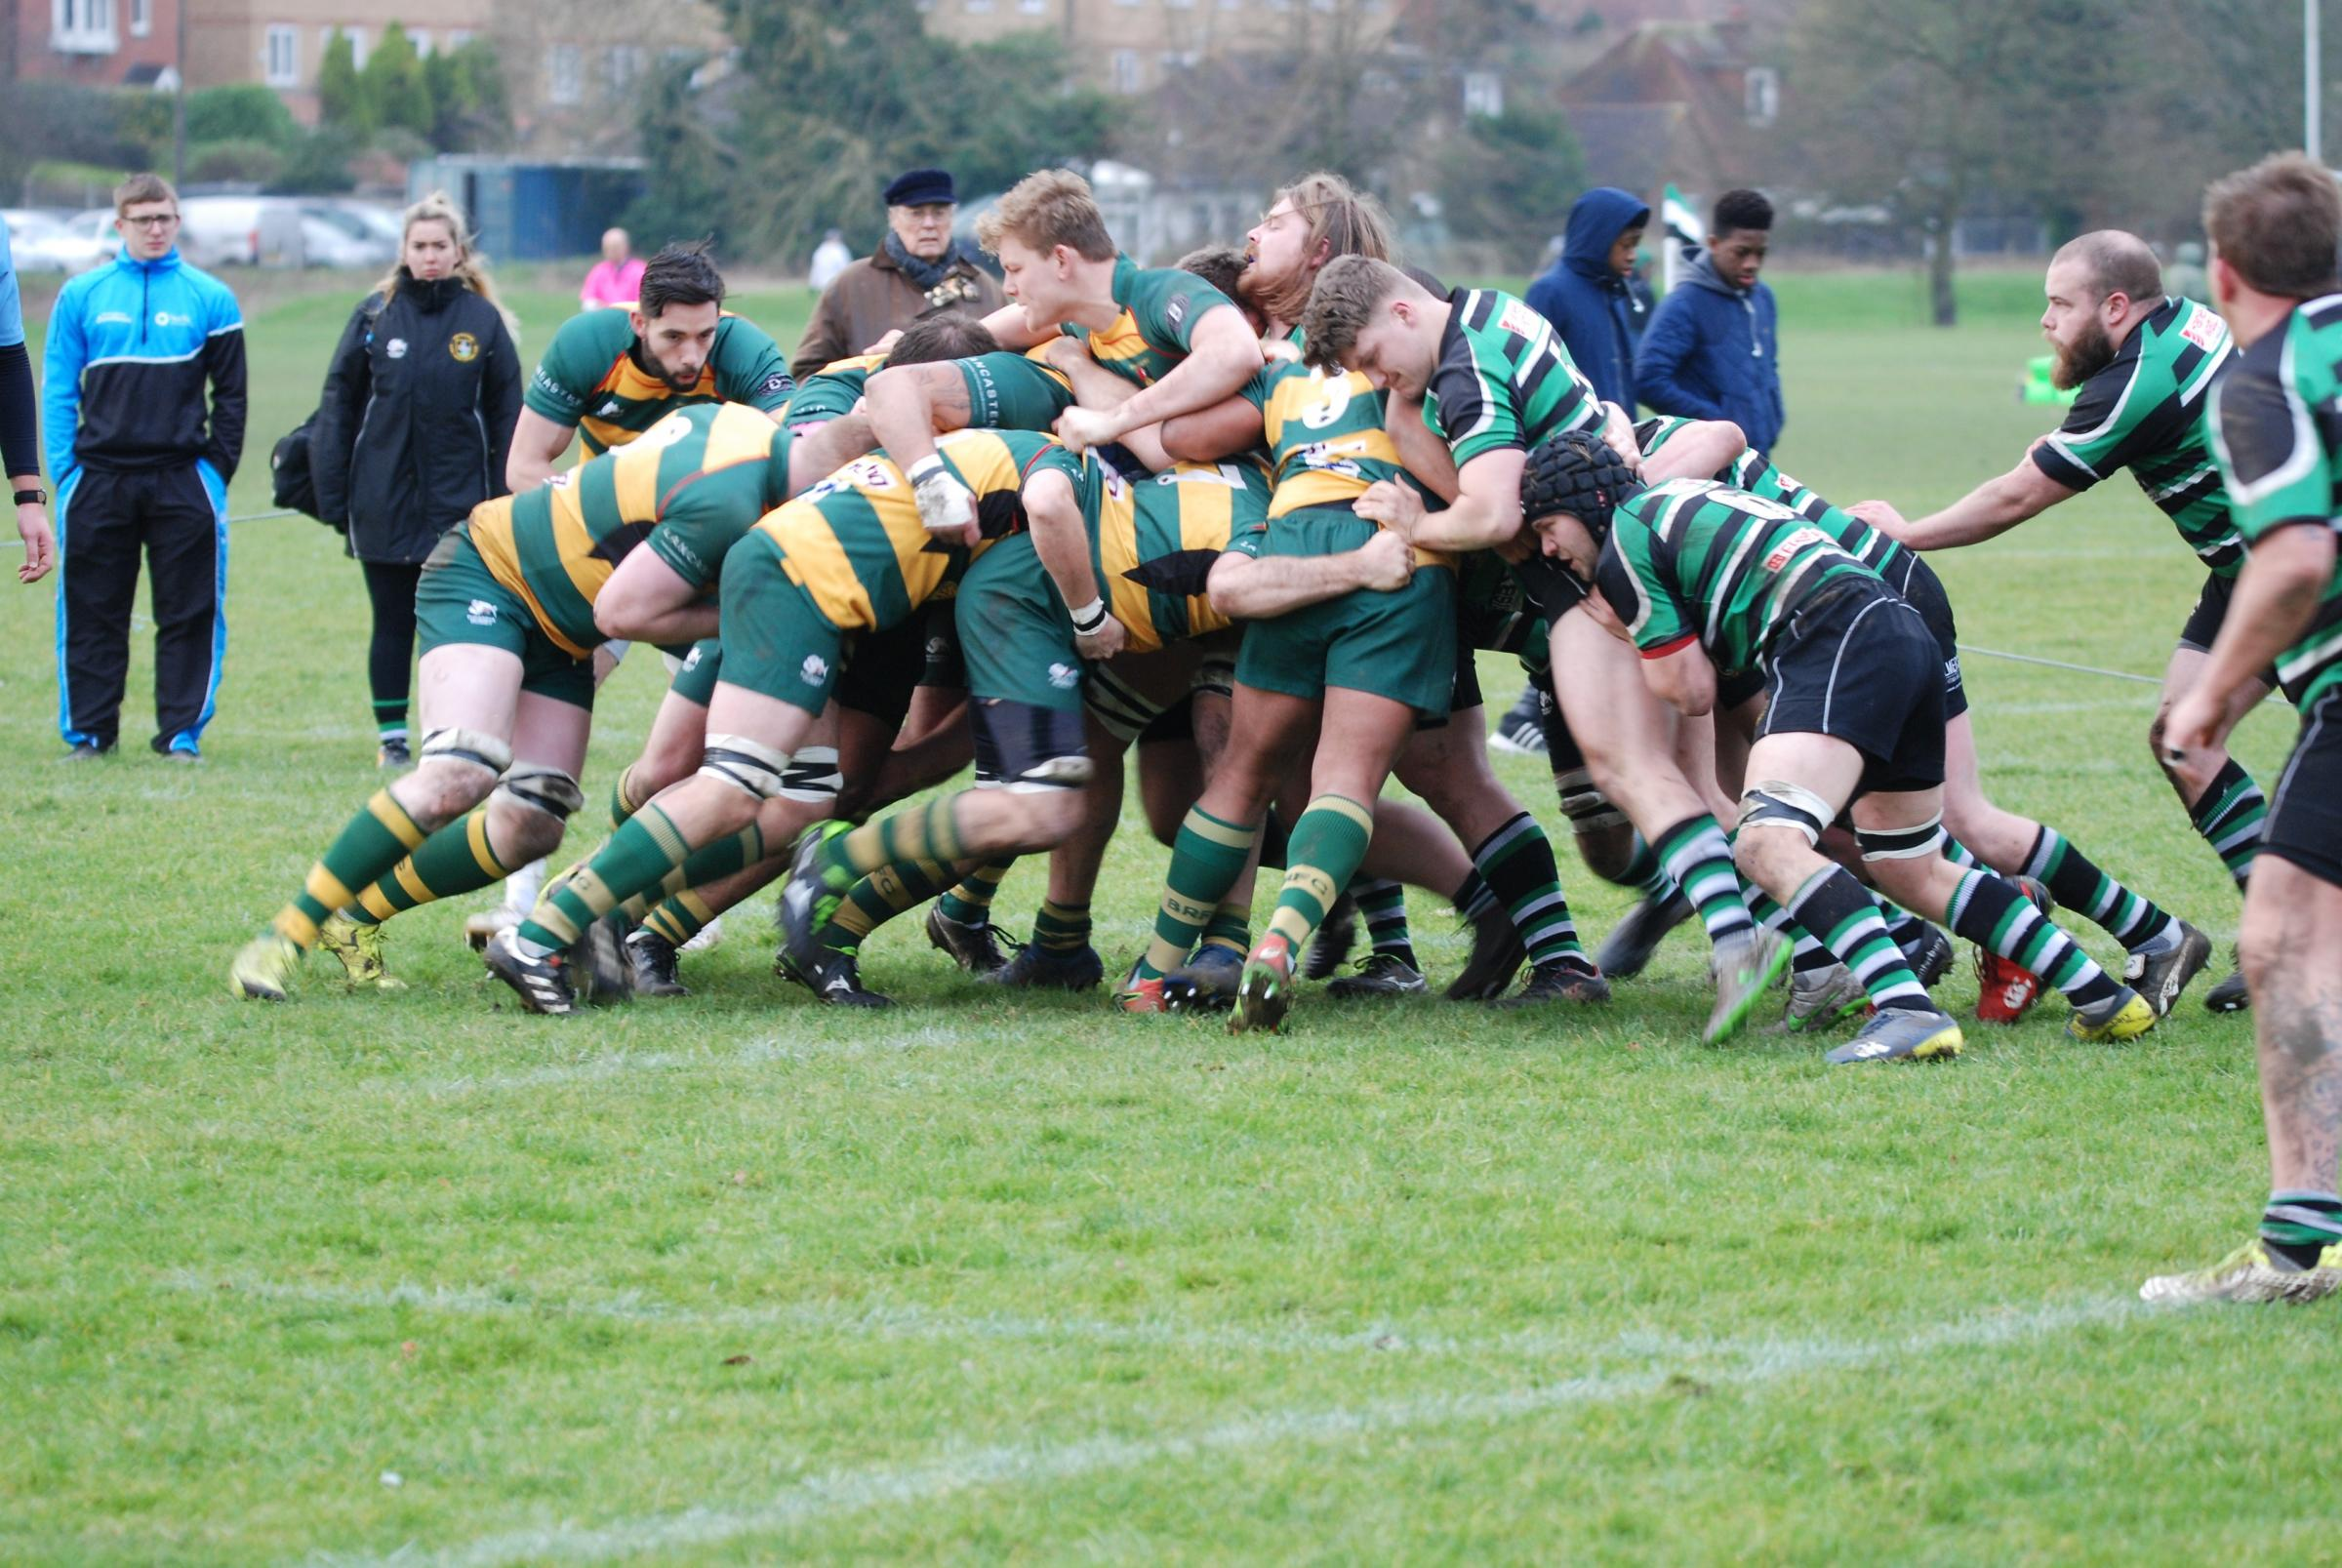 Beaconsfield were too strong for High Wycombe